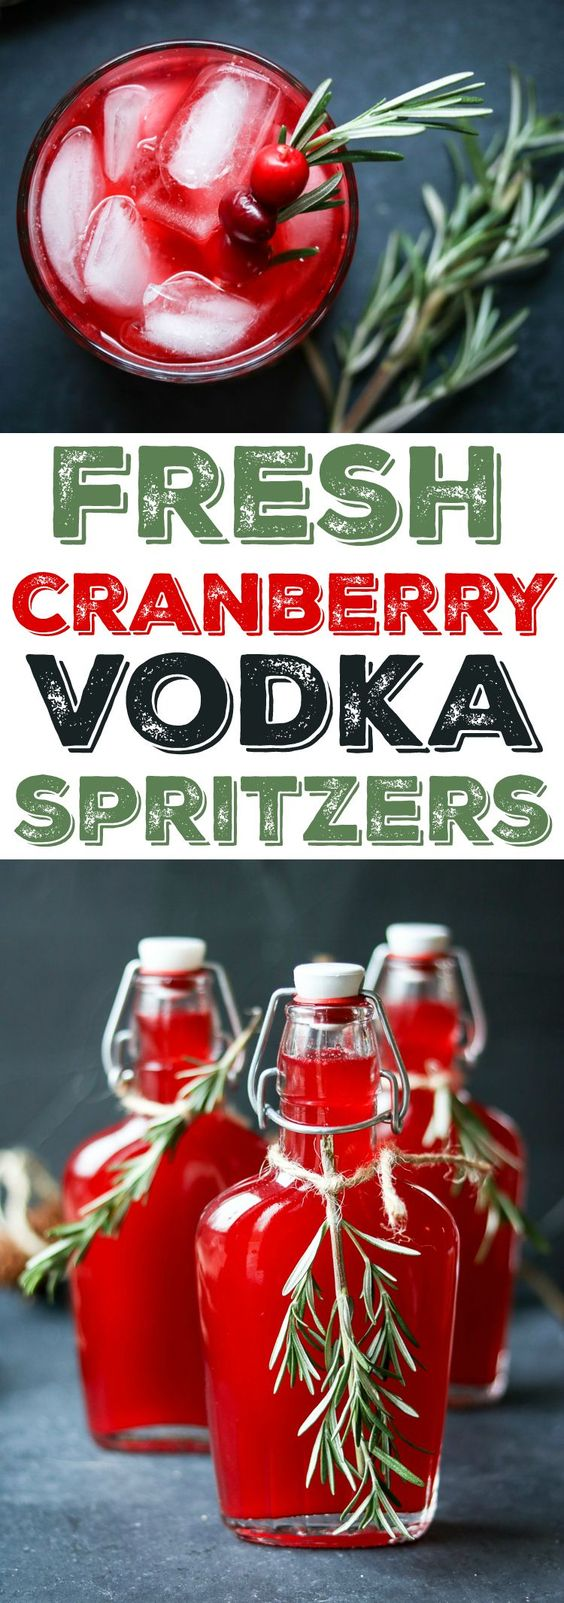 fresh cranberry vodka spritzer recipe